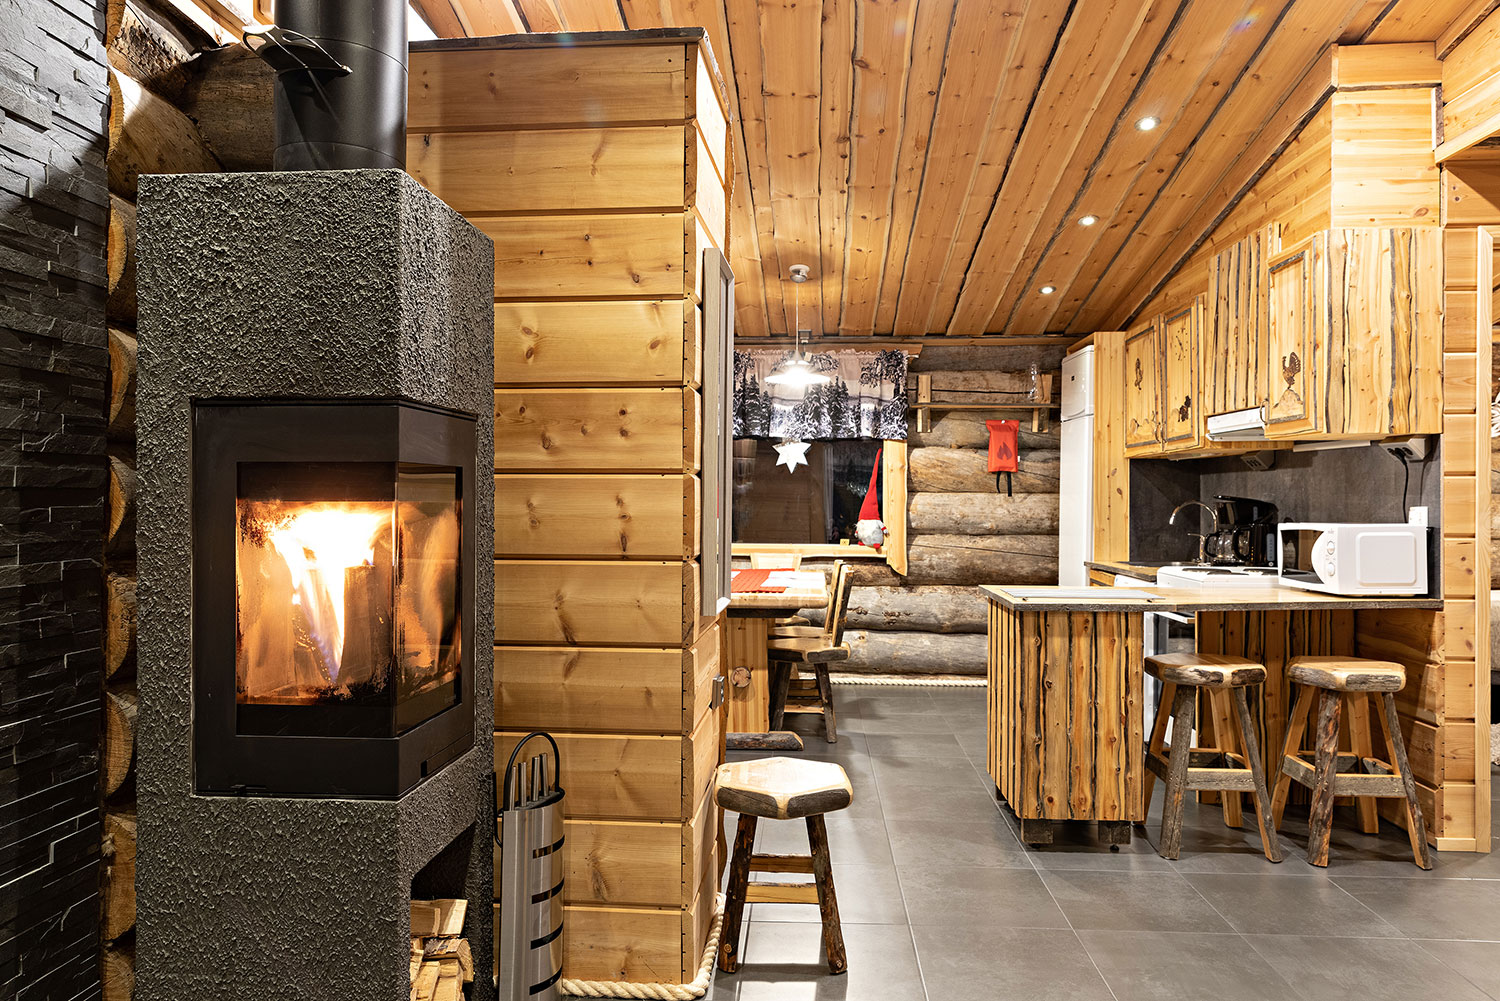 The cabins have a rustic luxury interior.